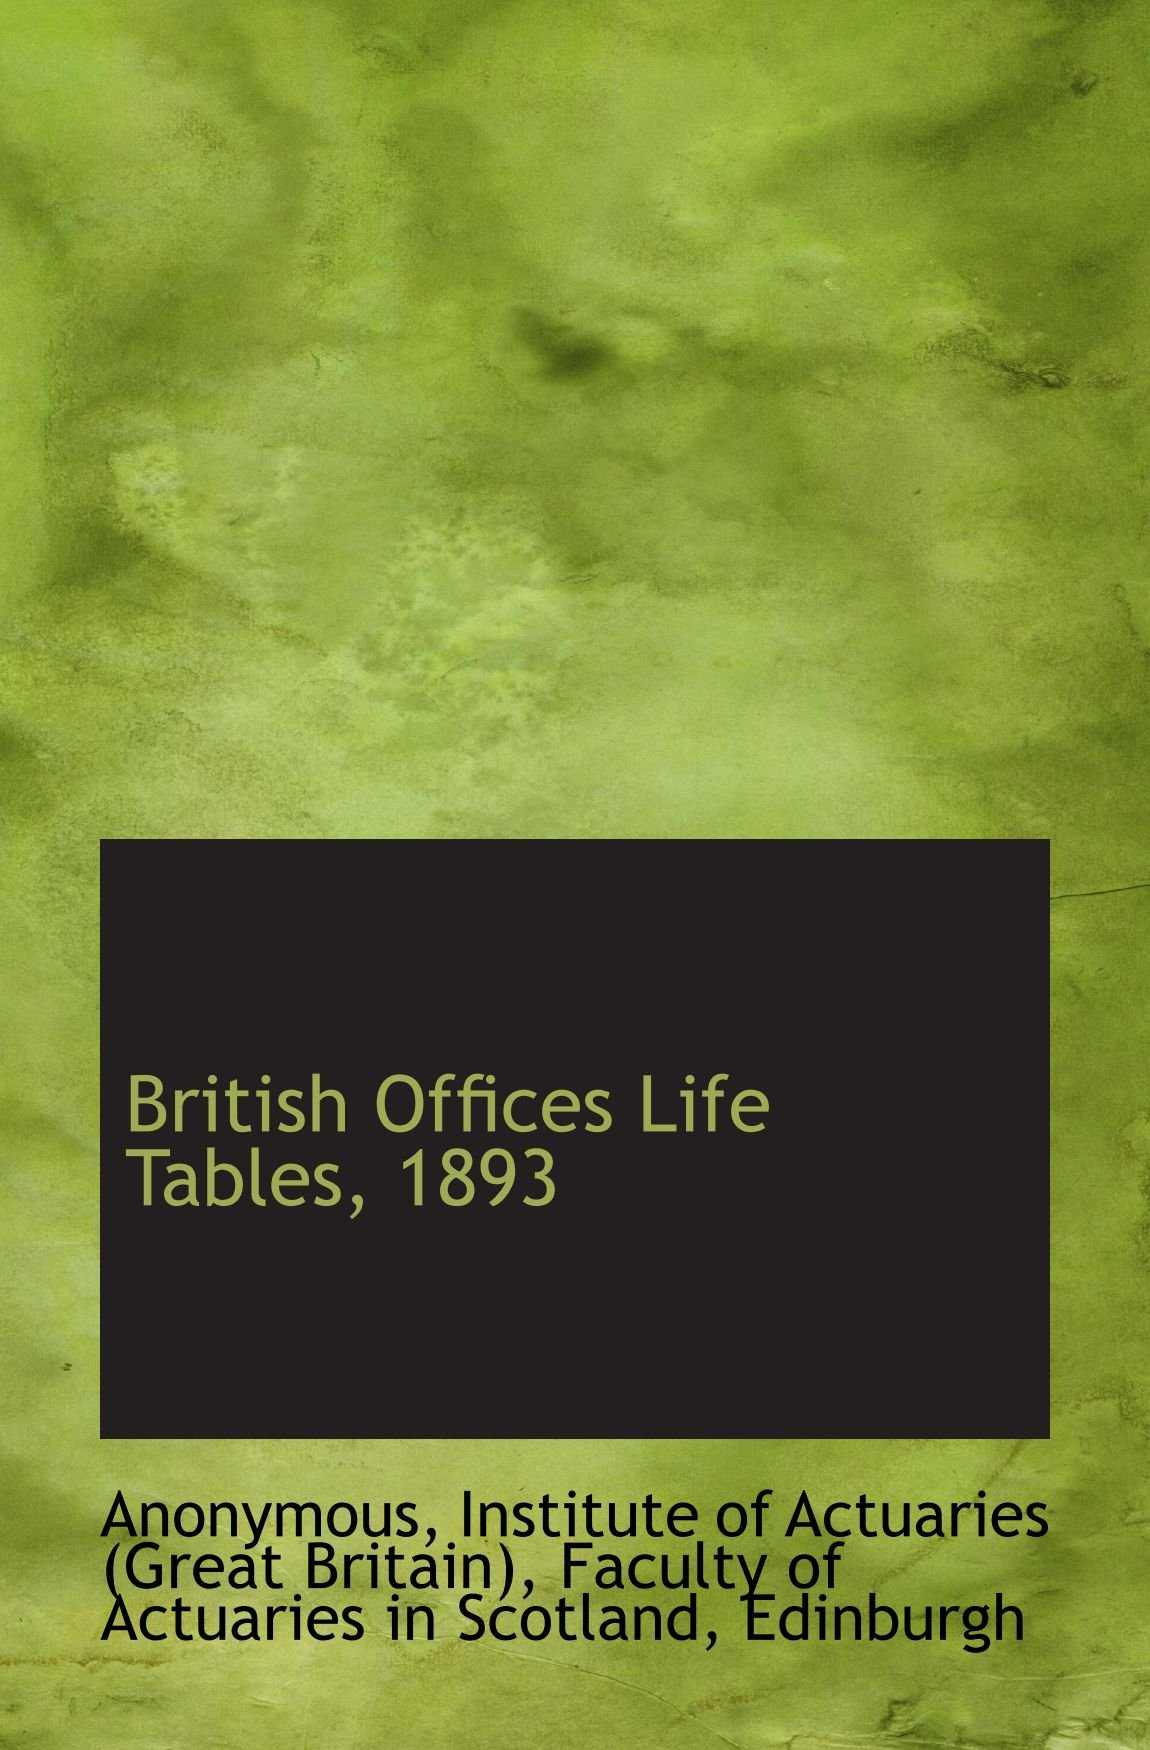 British Offices Life Tables, 1893 PDF